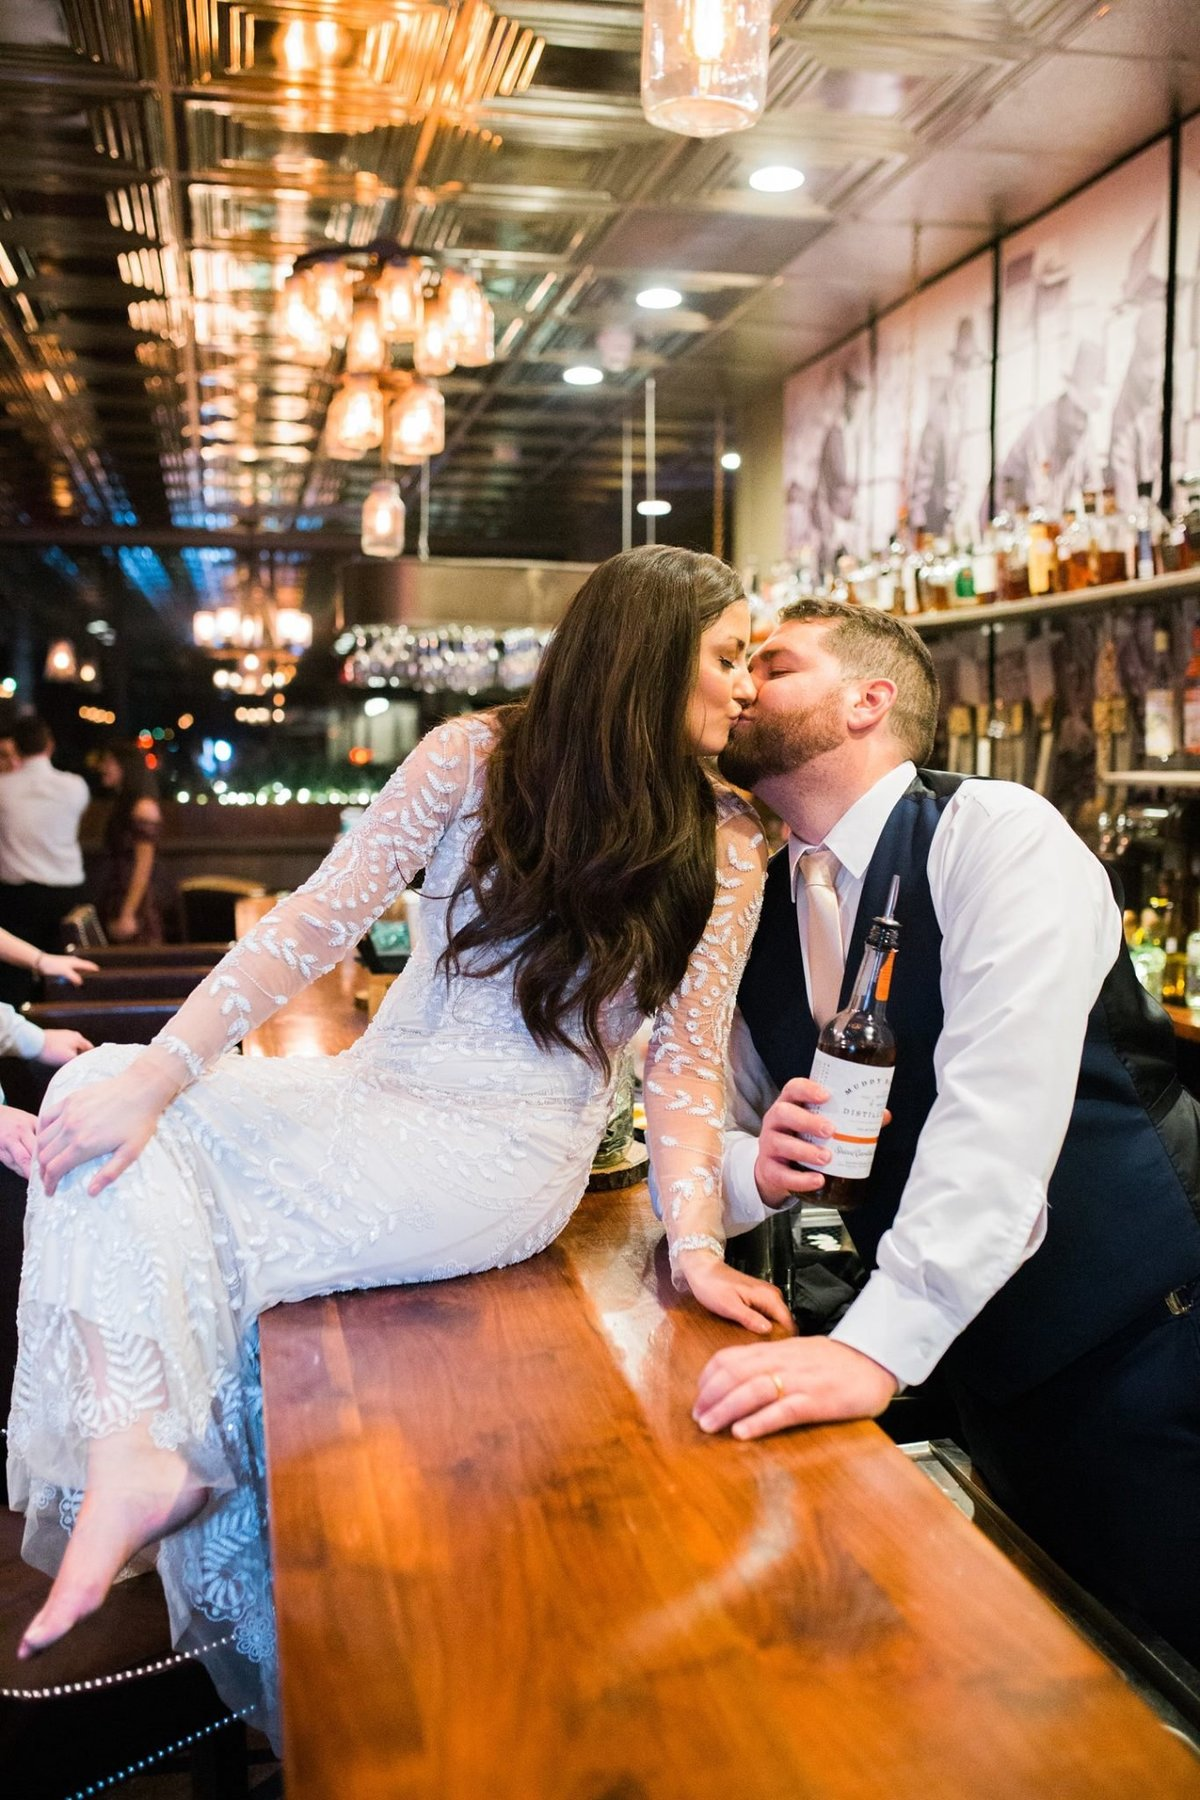 Wedding Photographer, bride sitting on bar kissing groom